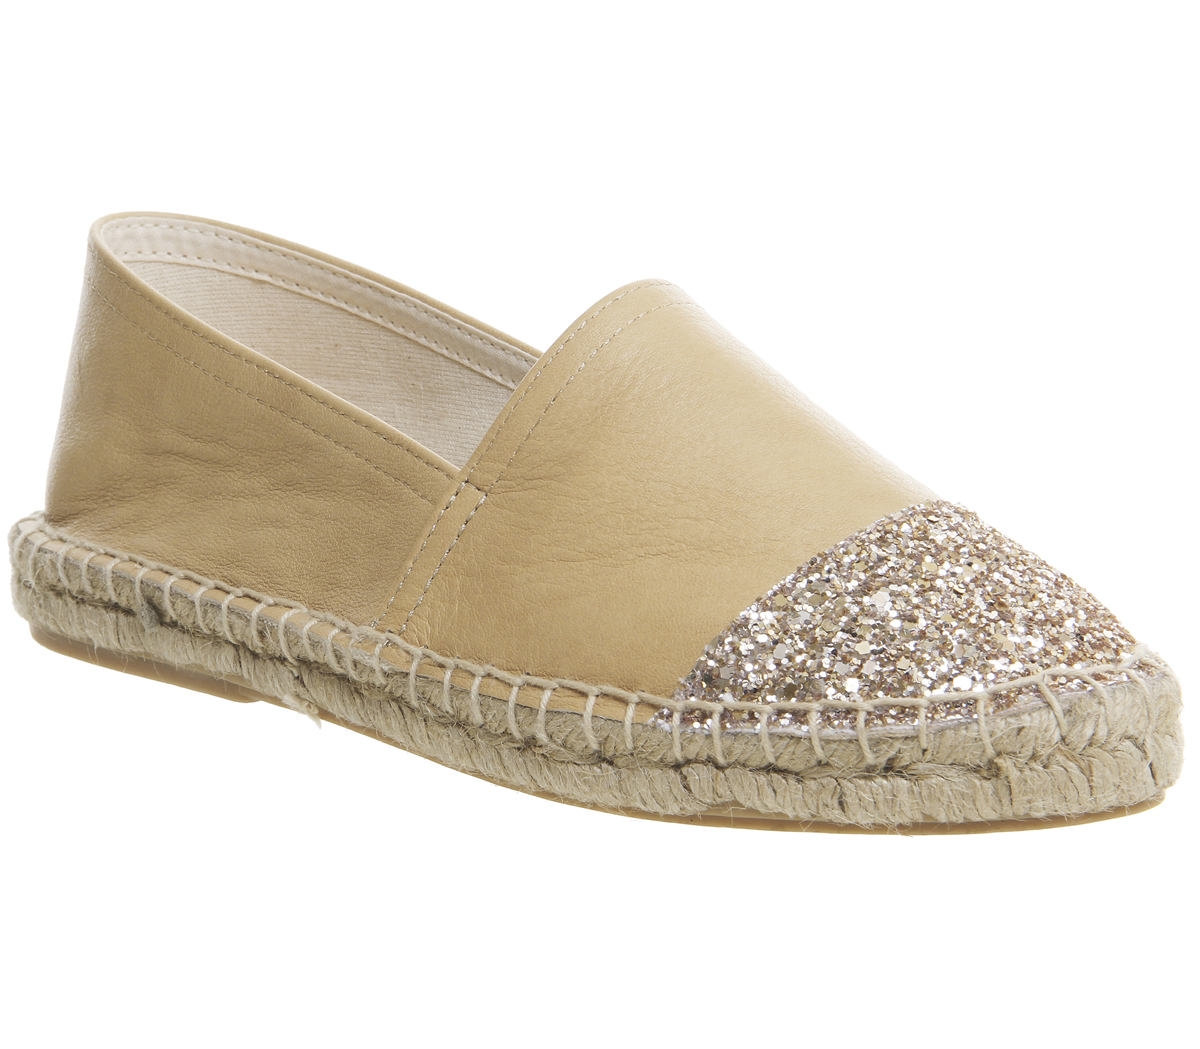 1157c49c4baed Womens Office Lucky Espadrilles With Toe Cap Nude Leather Rose Gold ...